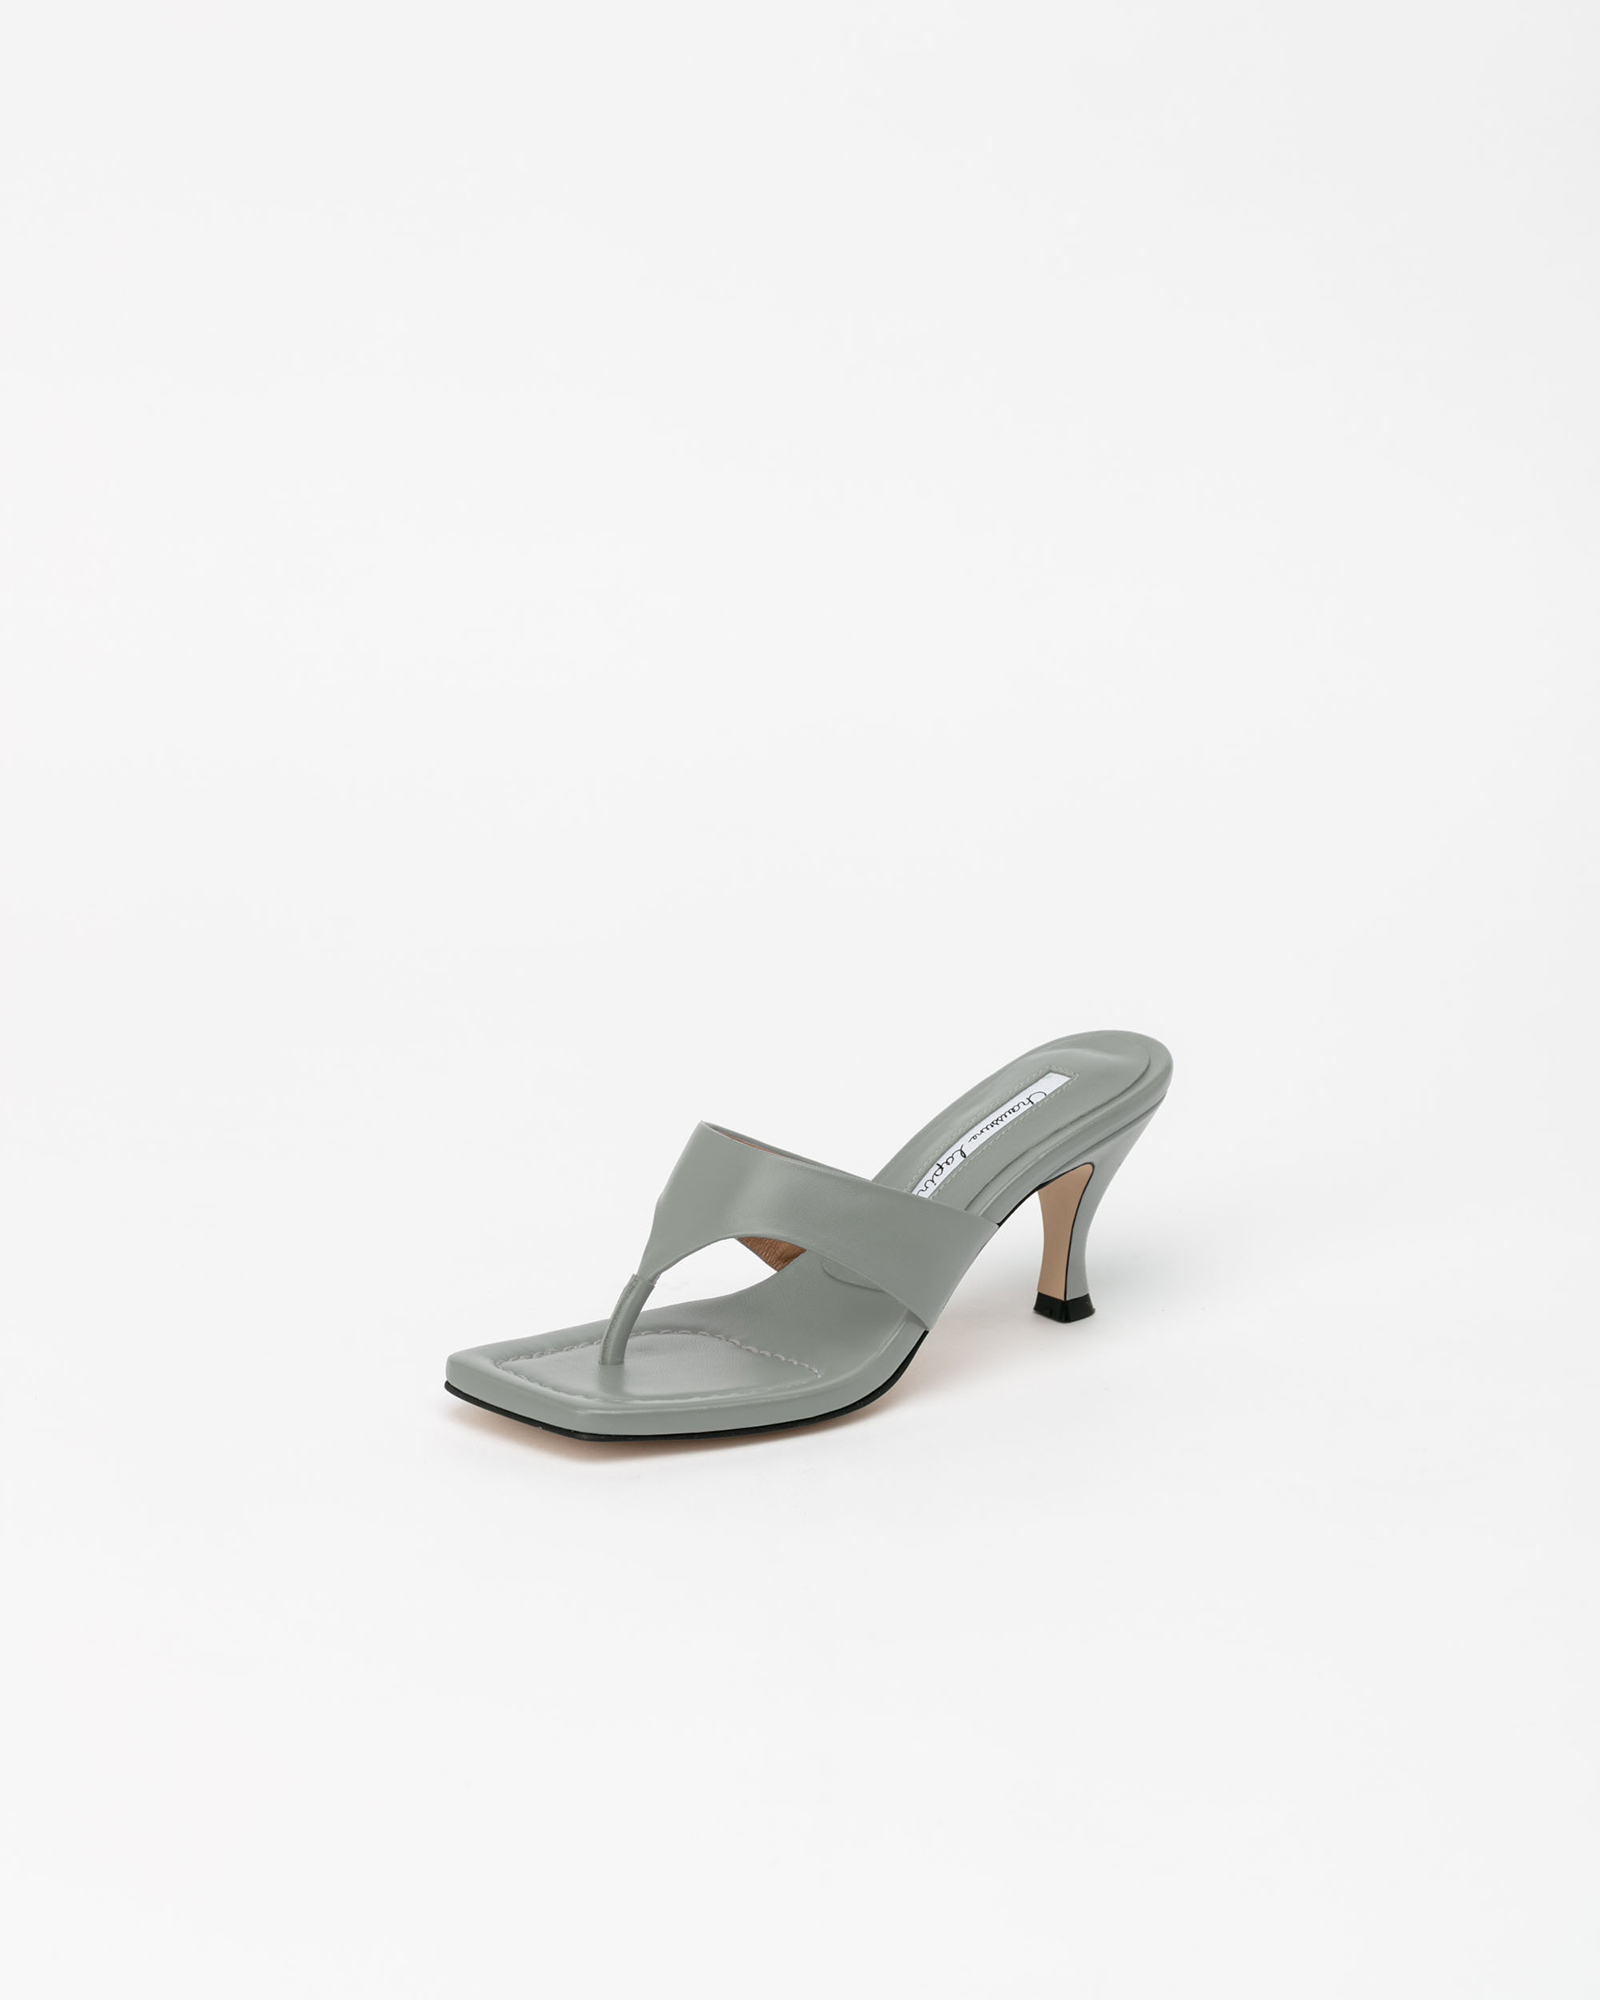 Maggy Thong Mules in Mineral Gray